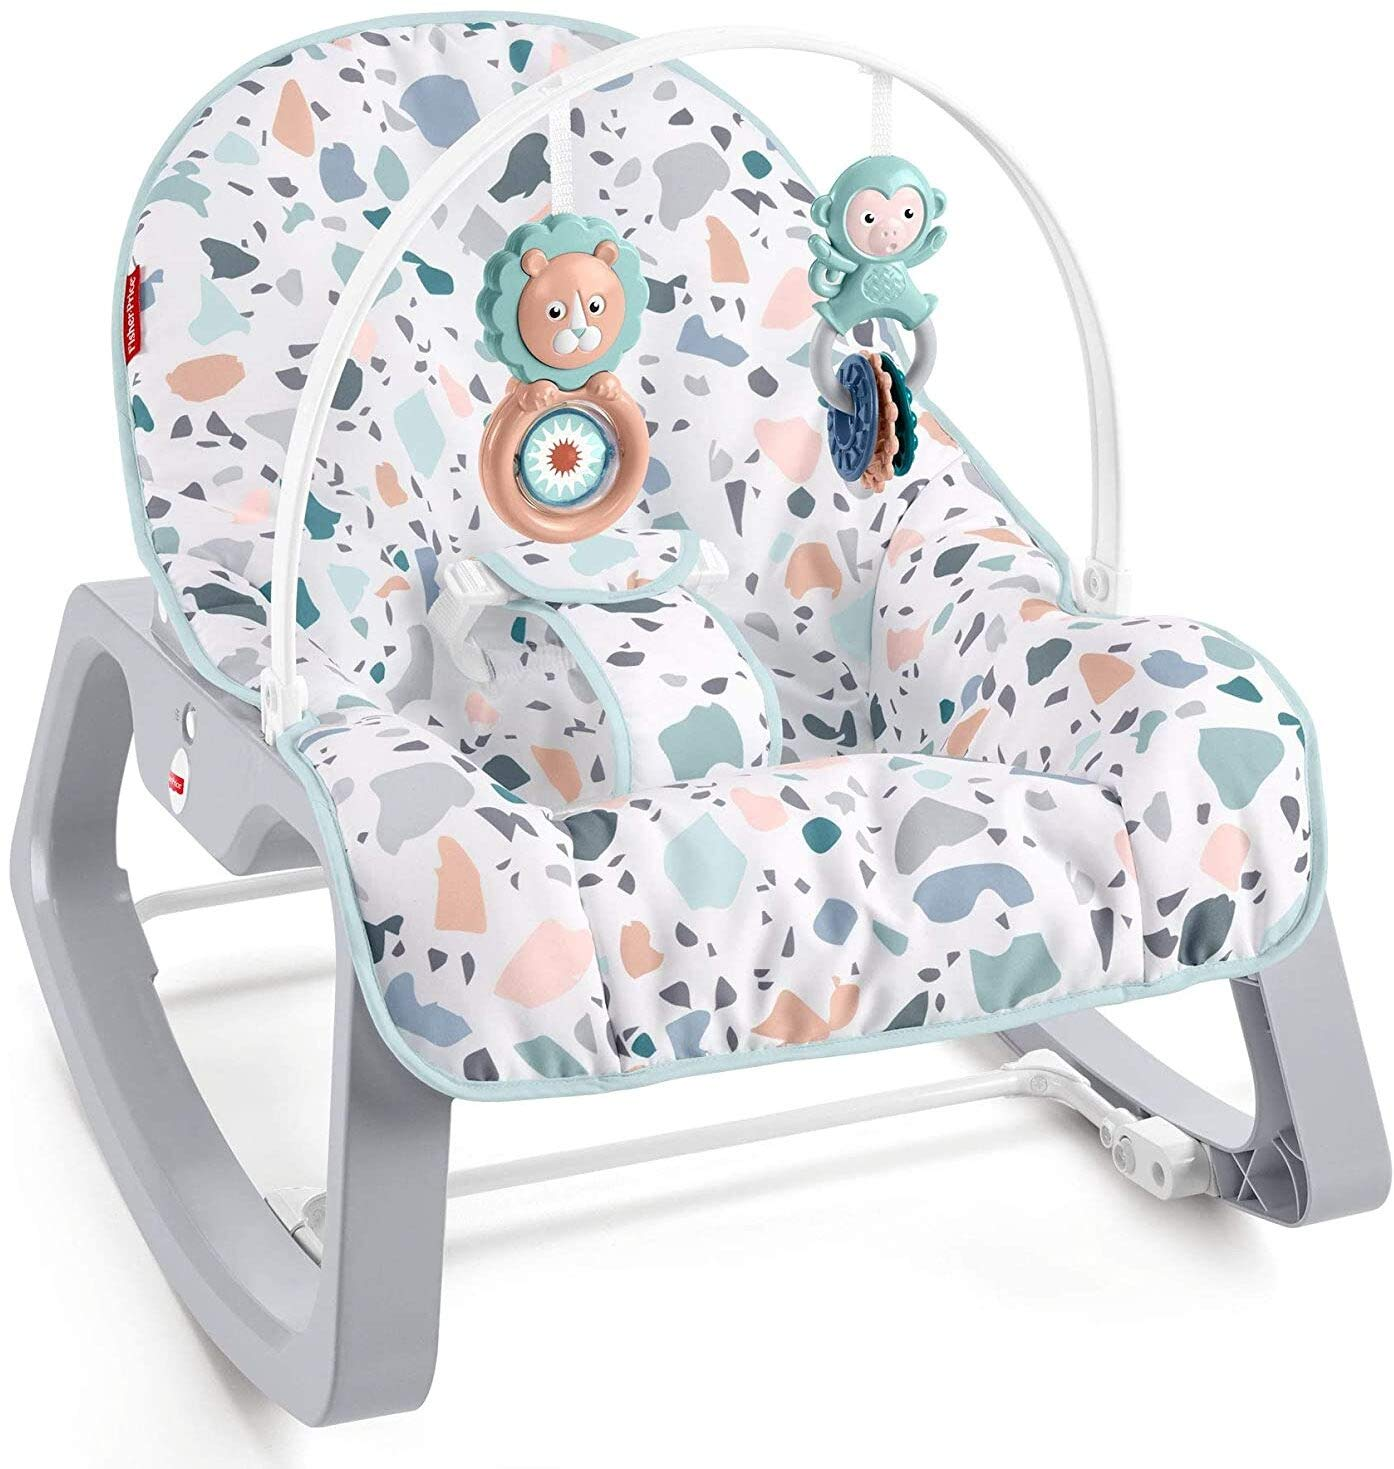 Fisher Price GKH64 Infant-to-Toddler Rocker